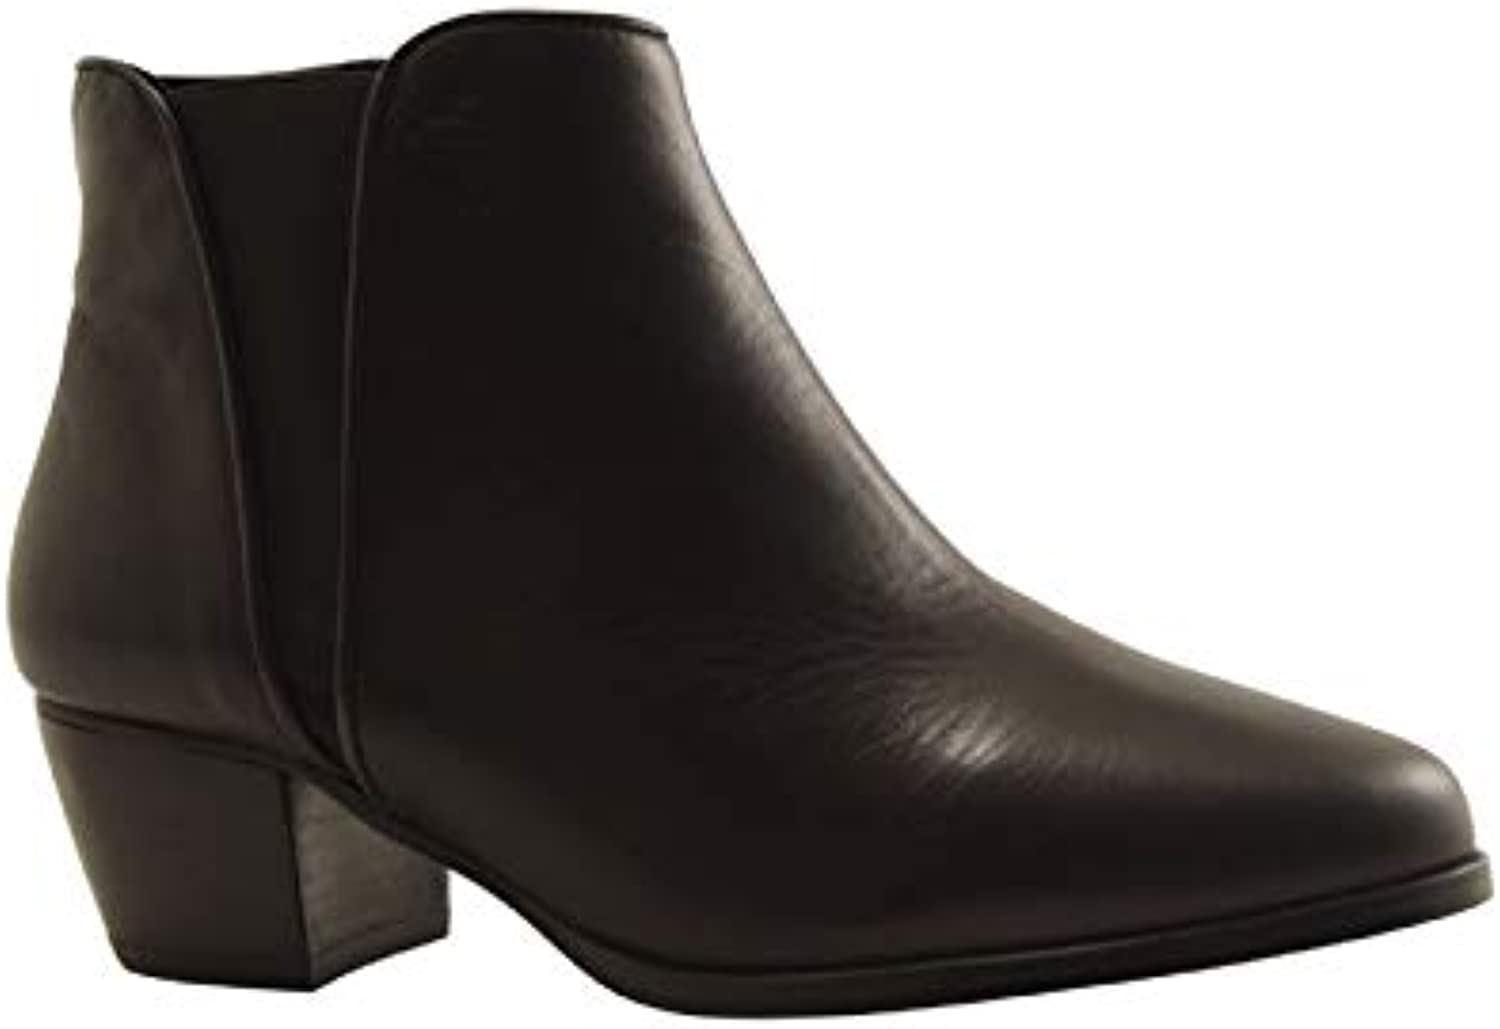 BOTTY SELECTION Femmes - Cati Boots - Boots Cati - Noir d27eb1